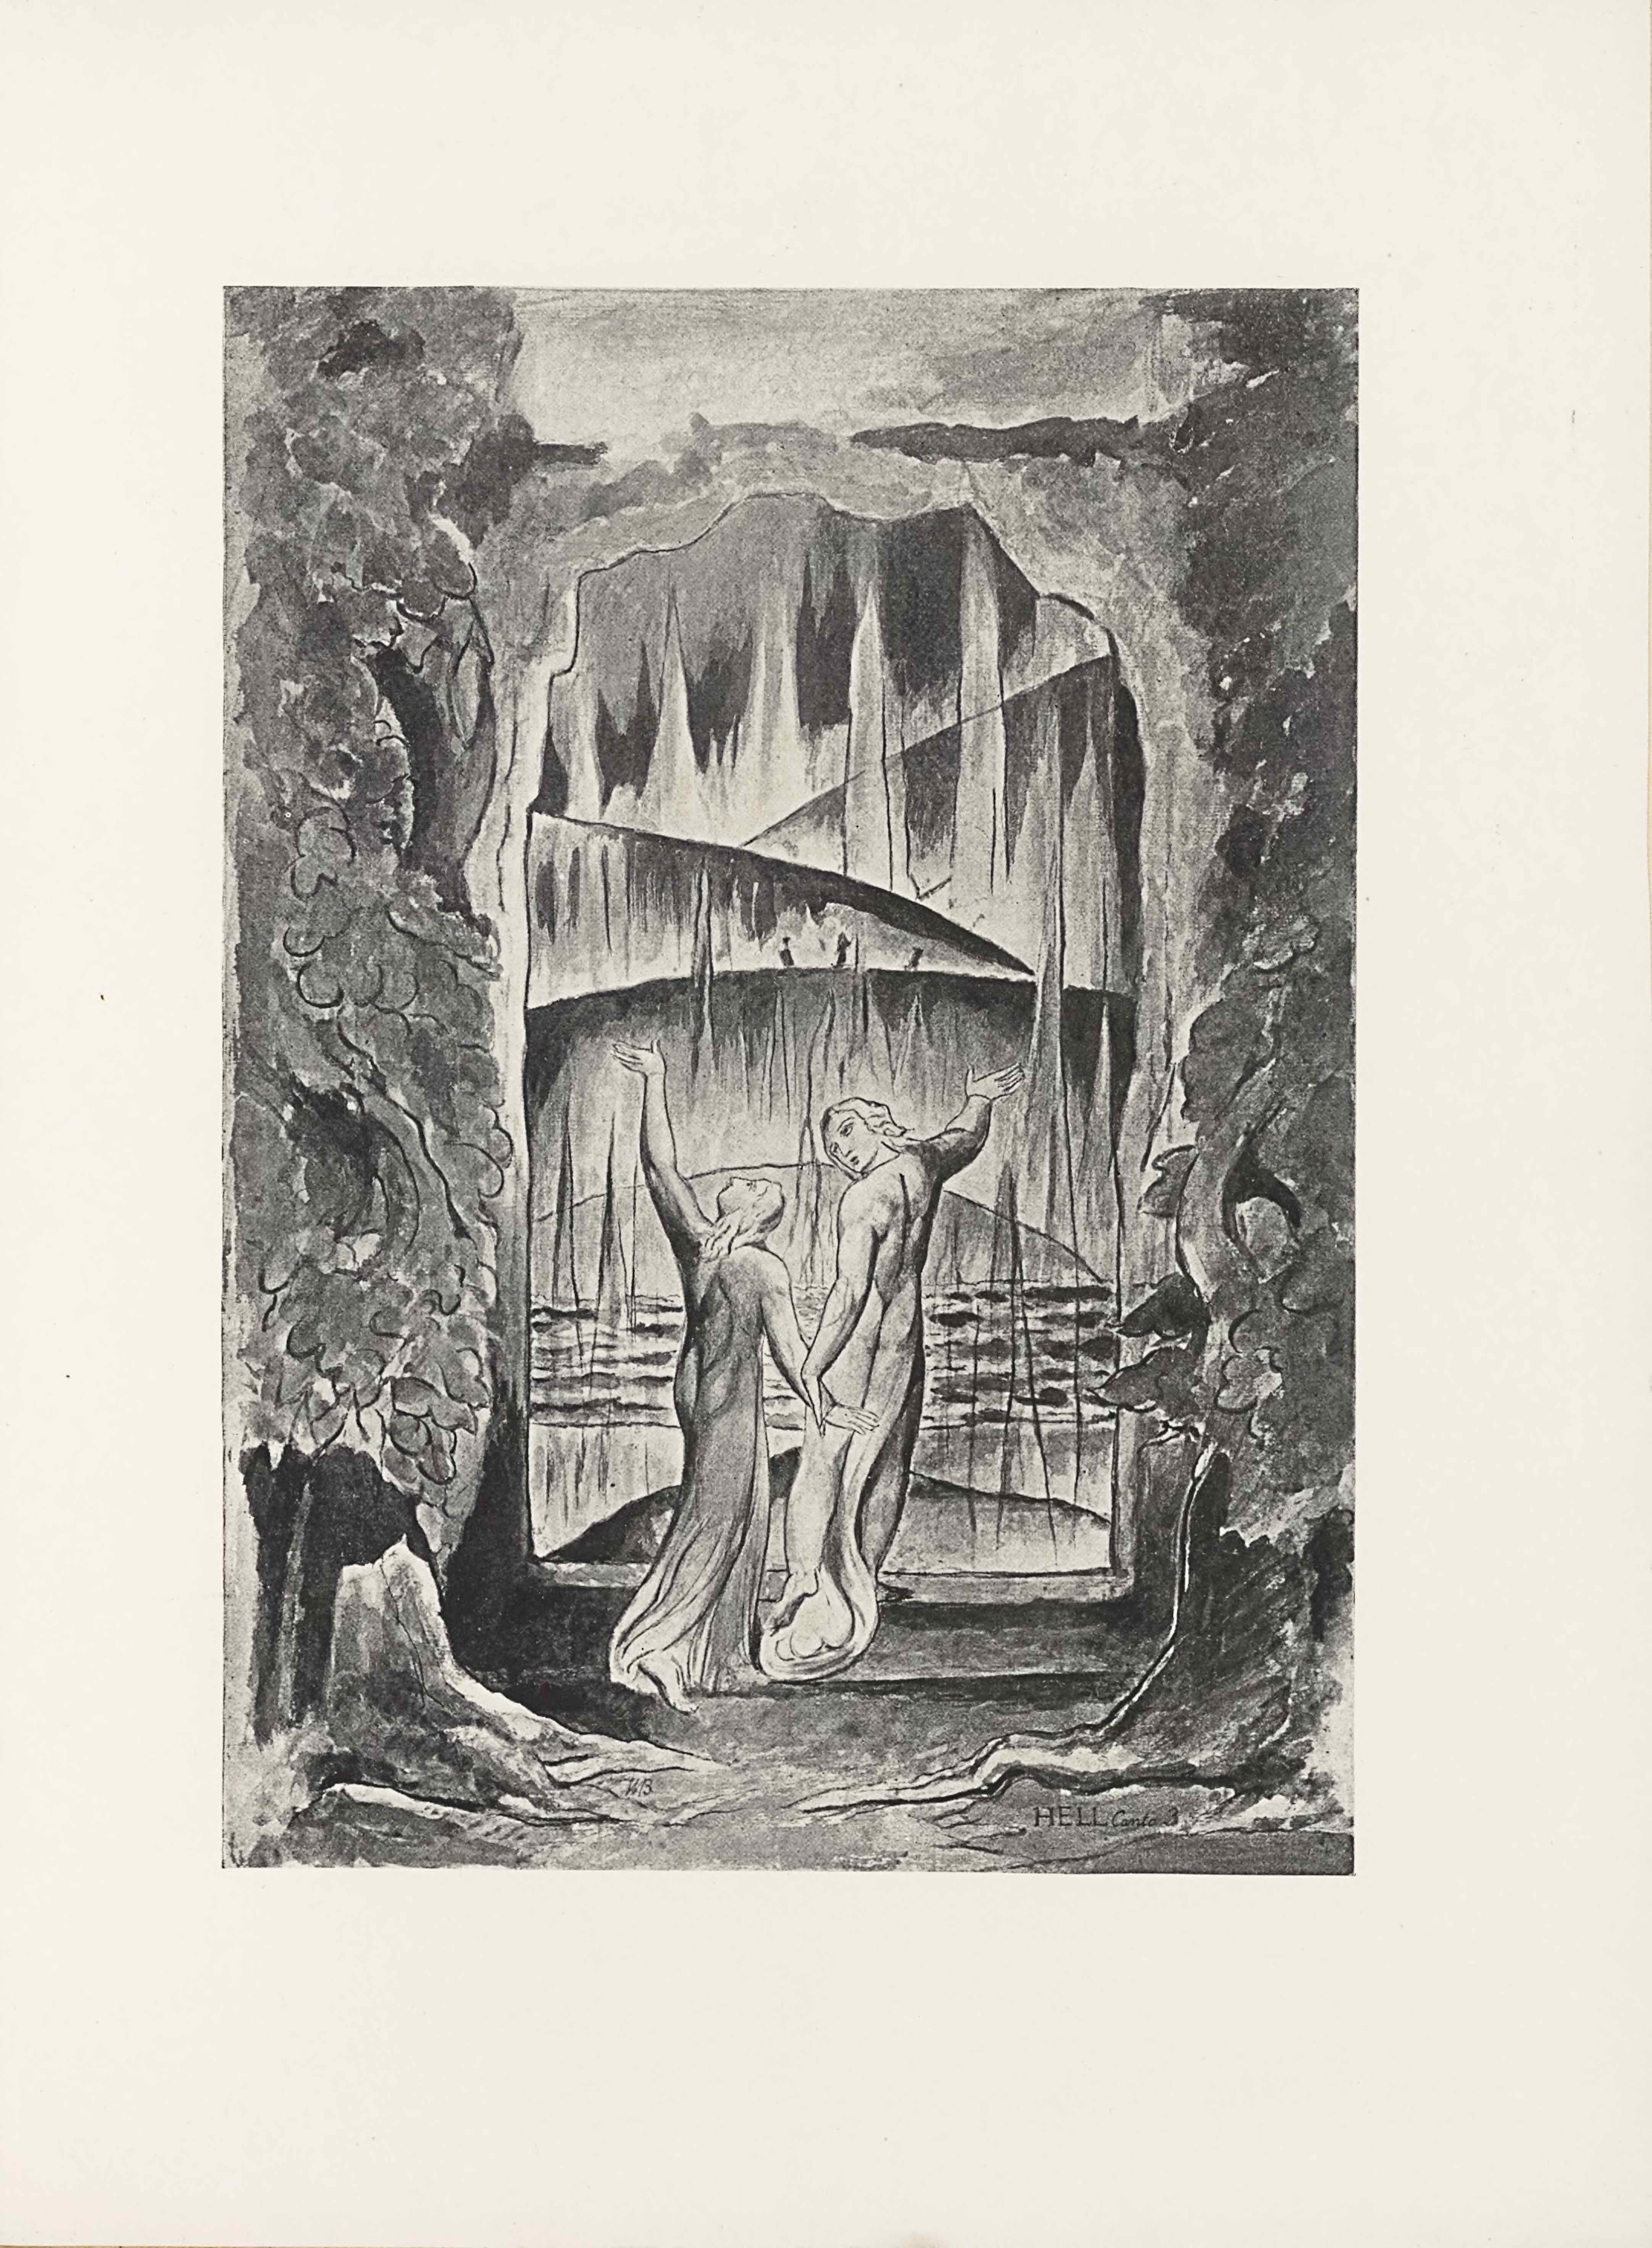 "This halftone reproduction of a water-colour drawing by William Blake                  illustrating Dante's Inferno appears in portrait orientation. The image shows two                  central figures with their back to the viewer standing at the gate [""portico""] of                  hell and about to enter. On either side of the portal is a tall tree with leaves                  swirling around the trunk, extending the entire height of the image.. The                  mirroring trees have roots that creep towards each other toward the centre bottom                  of the image. The two lightly robed figures [the poets Dante and Virgil] stand in                  front of these roots, on a threshold that leads into a vision of hell. The figure                  on the left is standing with his left arm lifted straight up and palm turned up to                  the sky. He is in mid-step, with his right leg lagging slightly behind and lifted                  as if it were about to step forwards. His face is turned to look up at his left                  hand, and his light-coloured hair falls down his back. His right arm is extended                  down and slightly to his right, reaching towards the other figure. The other                  figure mirrors the first in having the outside arm, this time their right arm,                  extended up and out to the side. This figure has shorter hair, and has their face                  turned toward the other figure, giving the viewer a three-quarters profile. Both                  figures are wearing a transparent veil of material surrounding their legs and                  draping around their feet. Through the threshold of the gates of hell there is a                  path, a sea, and a series of five layers of hills and jagged triangular shapes.                  The hills are shaded in an ombre effect, going from dark at the top edge to light                  near the bottom. There appears three roughly sketched figures atop the second hill                  from the front. Across the surface of the portal appears various random streaks of                  shading. In the small section above the portal is the open sky. In the bottom                  right corner of the page appears the text: ""HELL [caps] Canto 3"" [citing Dante's                  Inferno]."